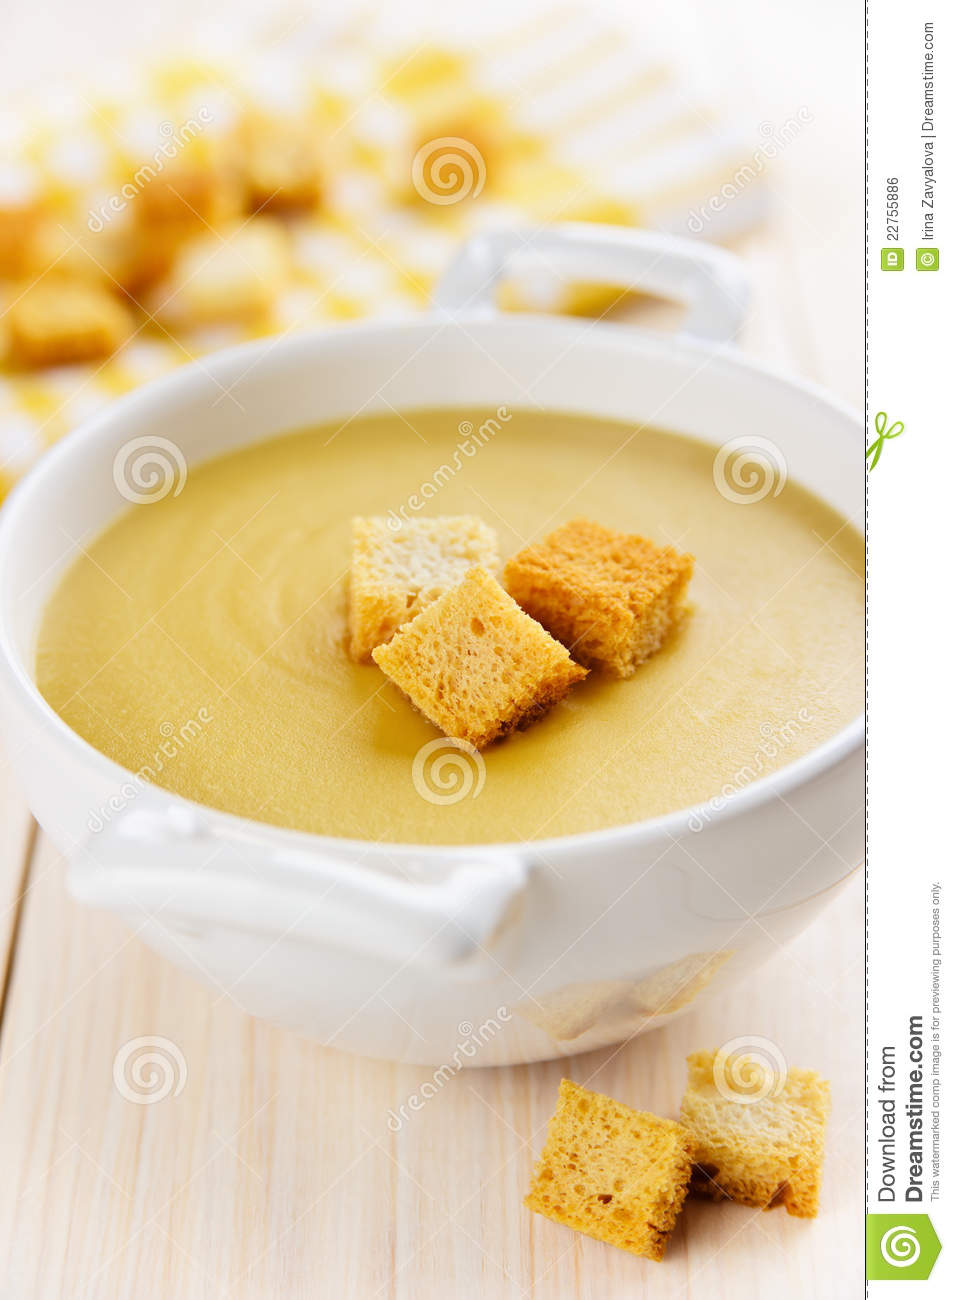 Vegetarian Lentil Cream Soup Royalty Free Stock Image ...